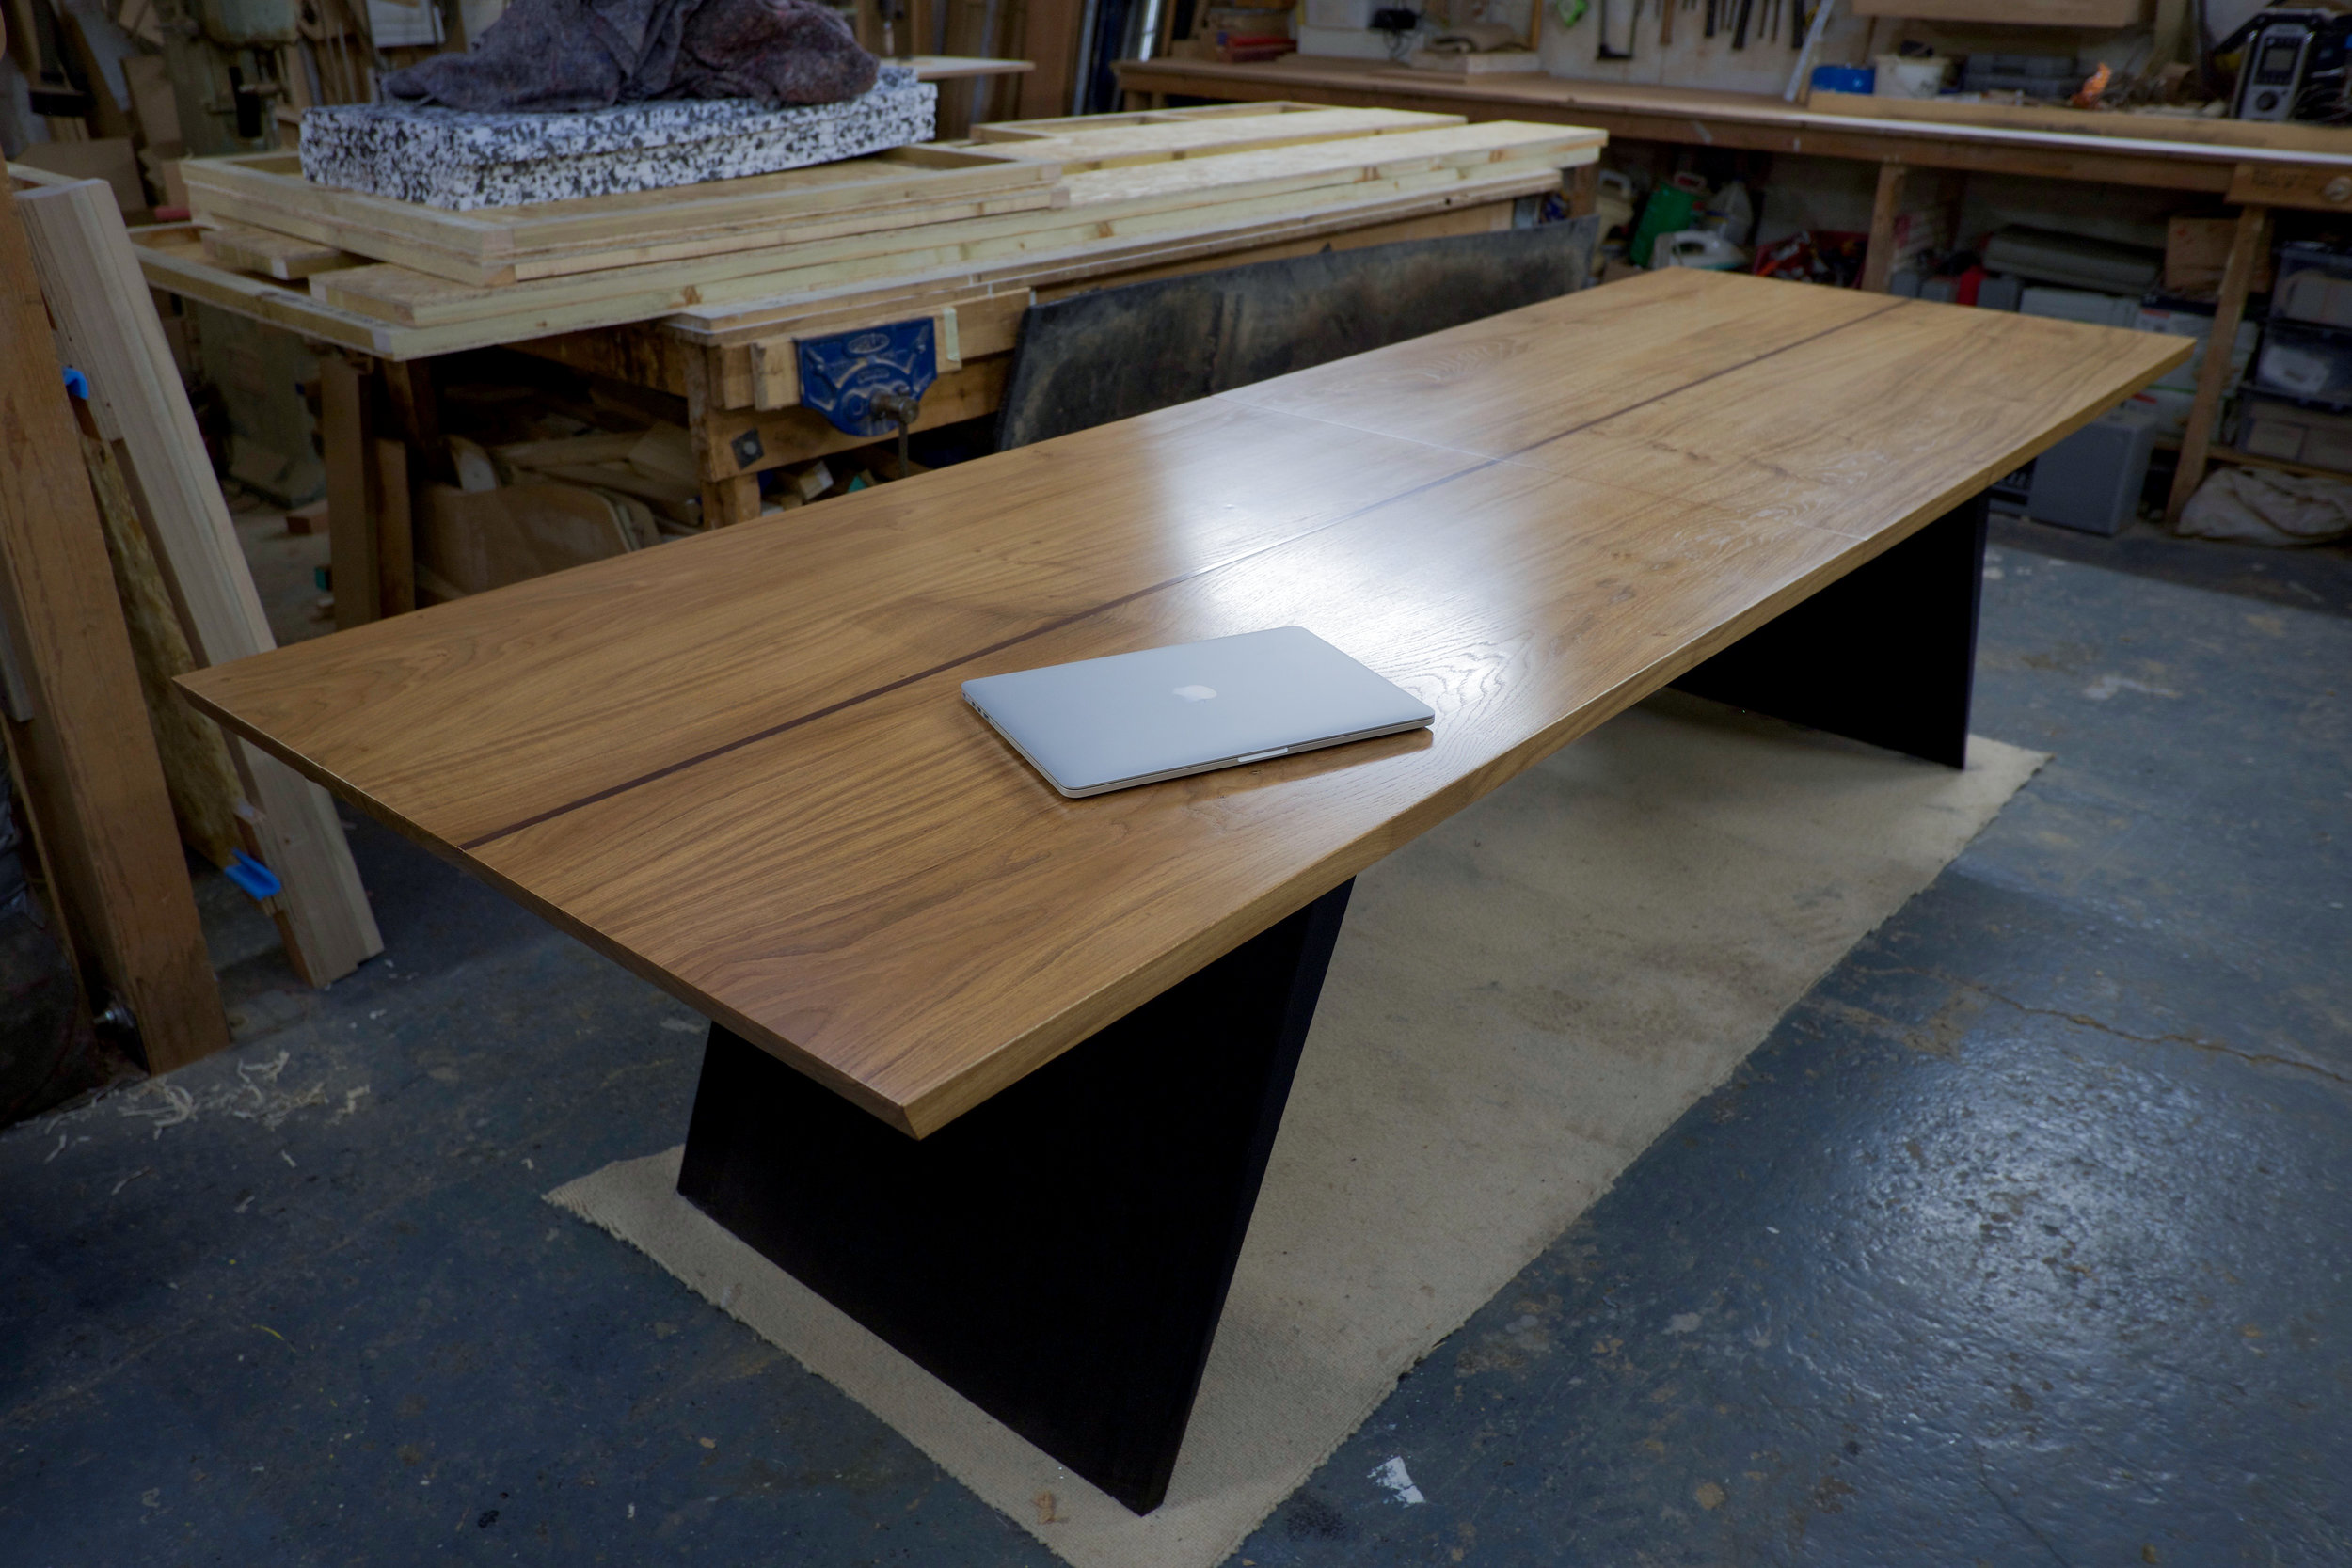 The Blade Dining Table - with the extending section folded away